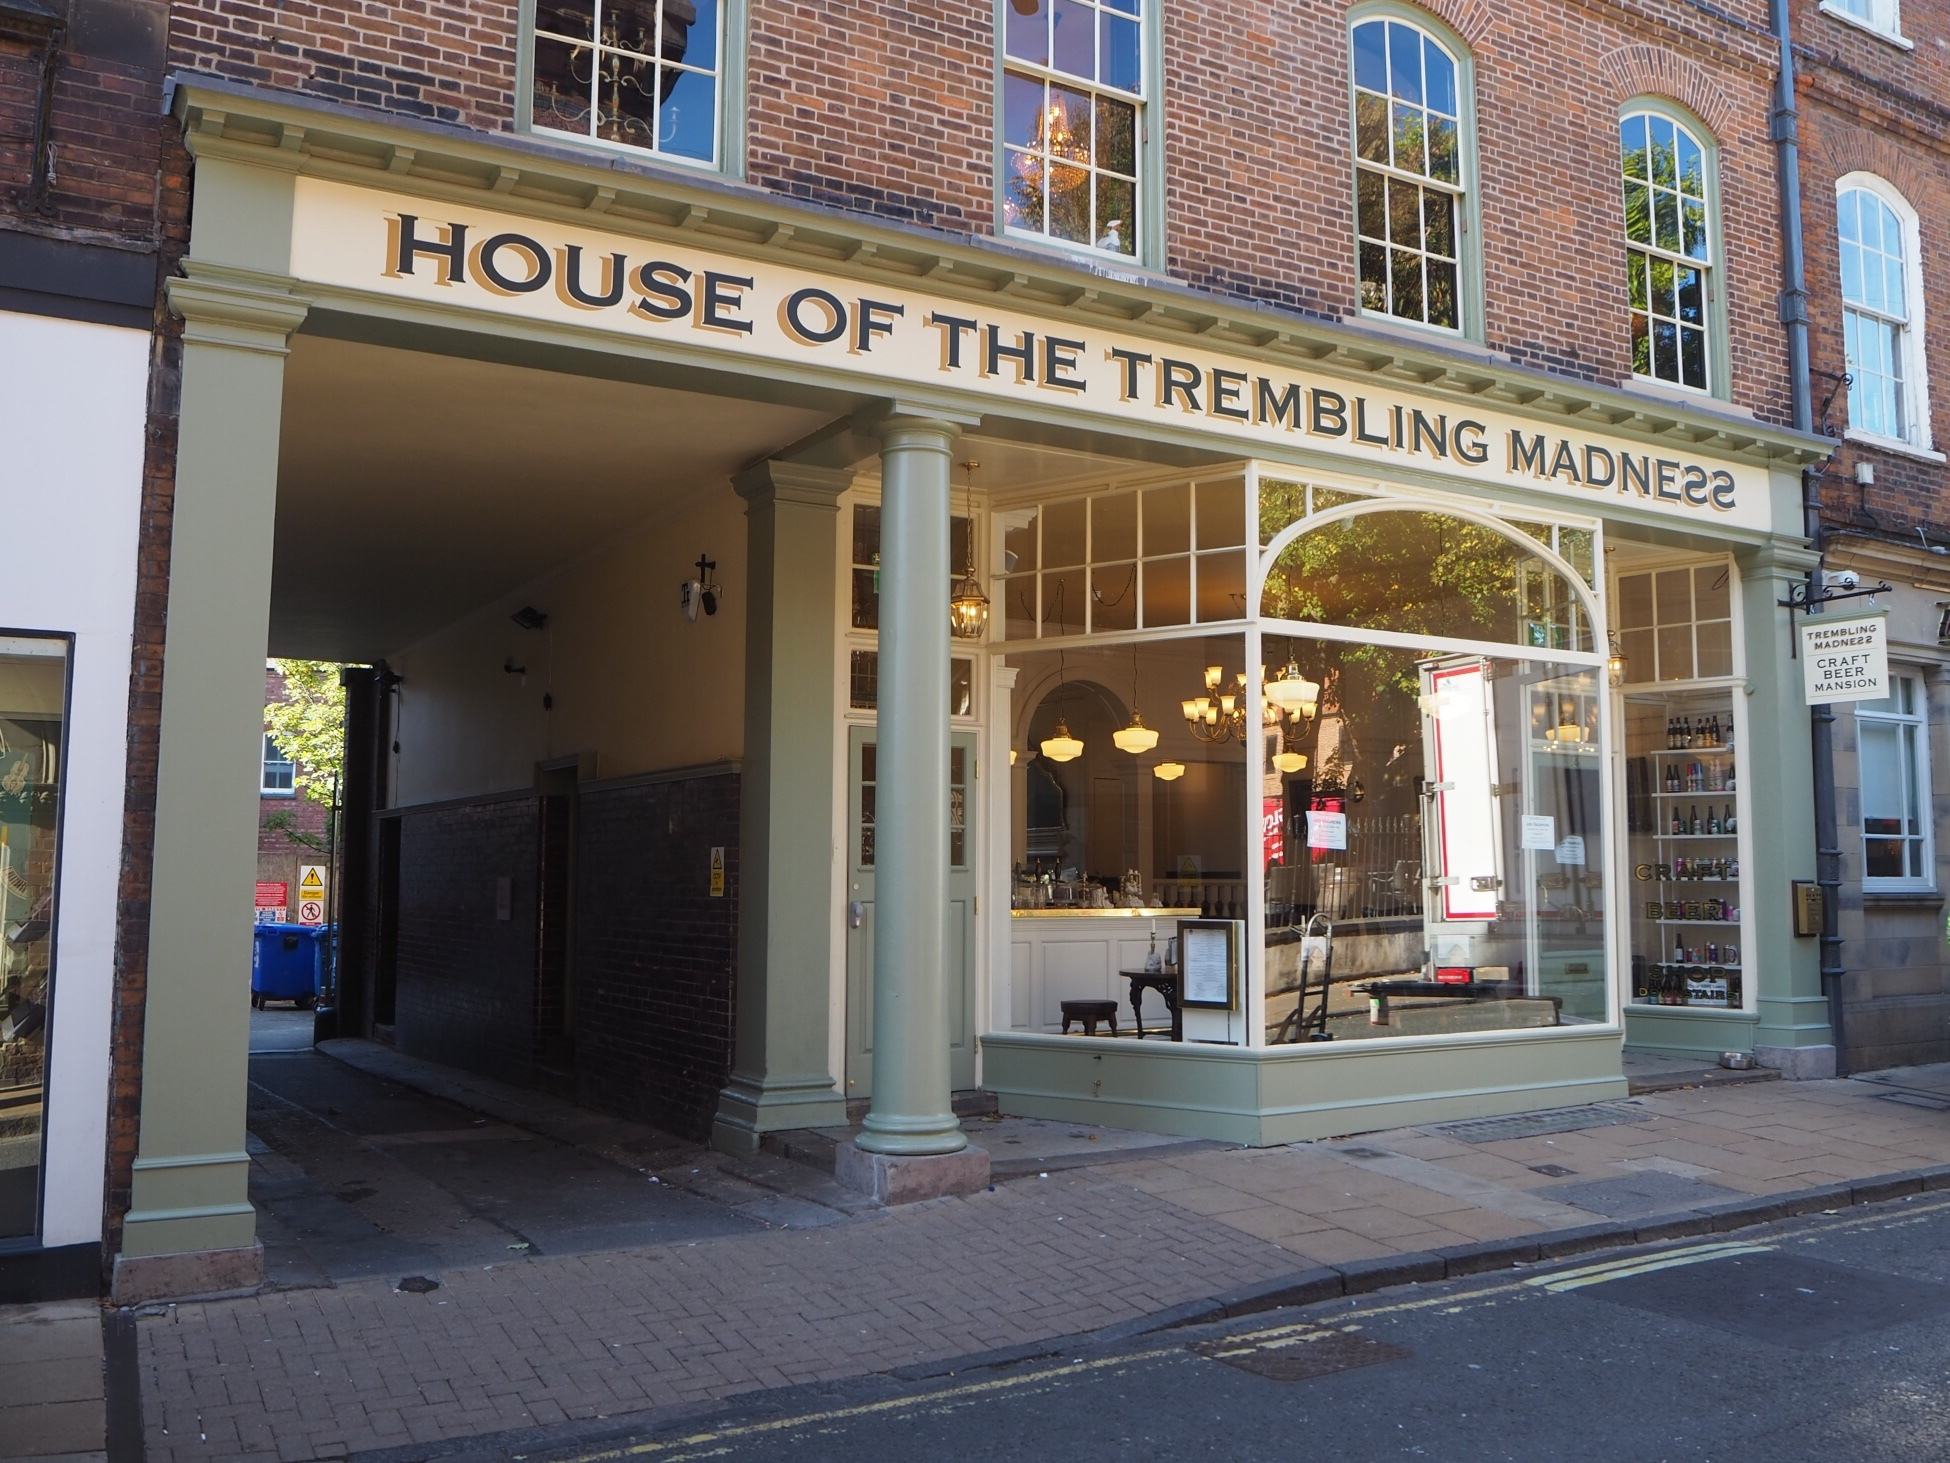 House of the Trembling Madness in York